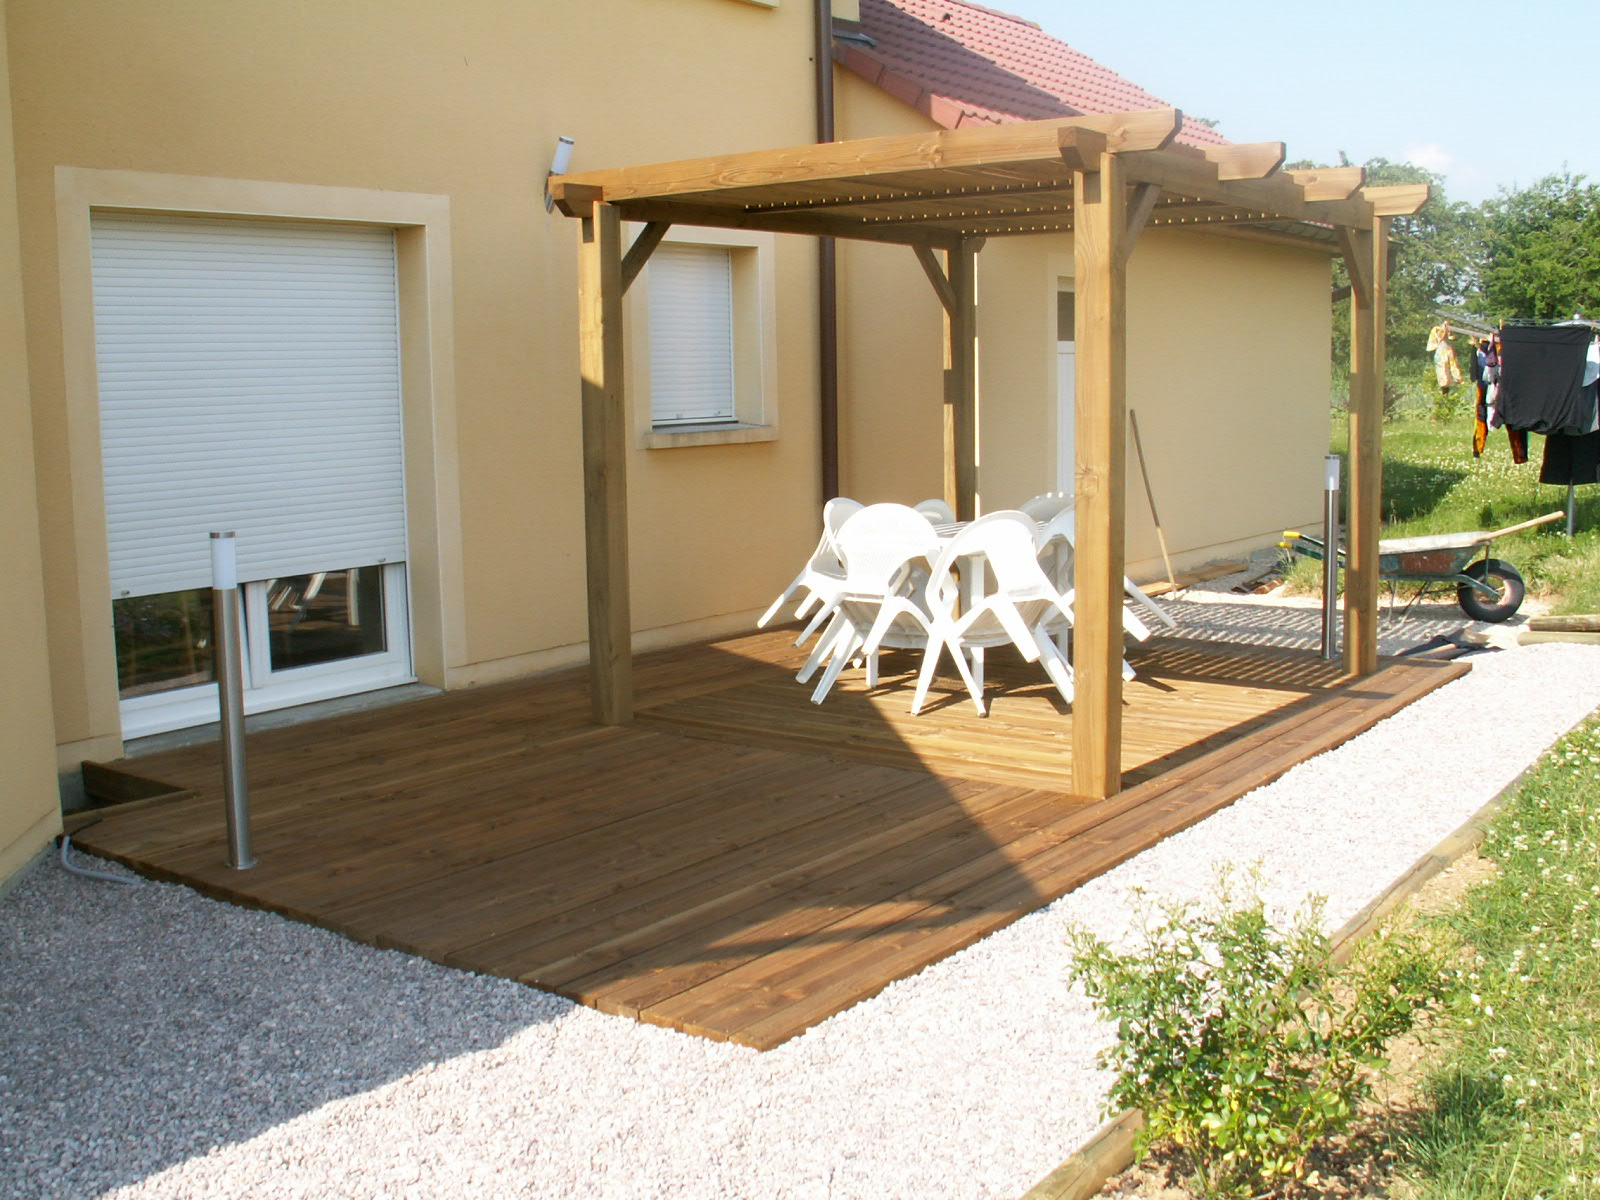 pergola sur terrasse bois pergola terrasse bois sur enperdresonlapin. Black Bedroom Furniture Sets. Home Design Ideas